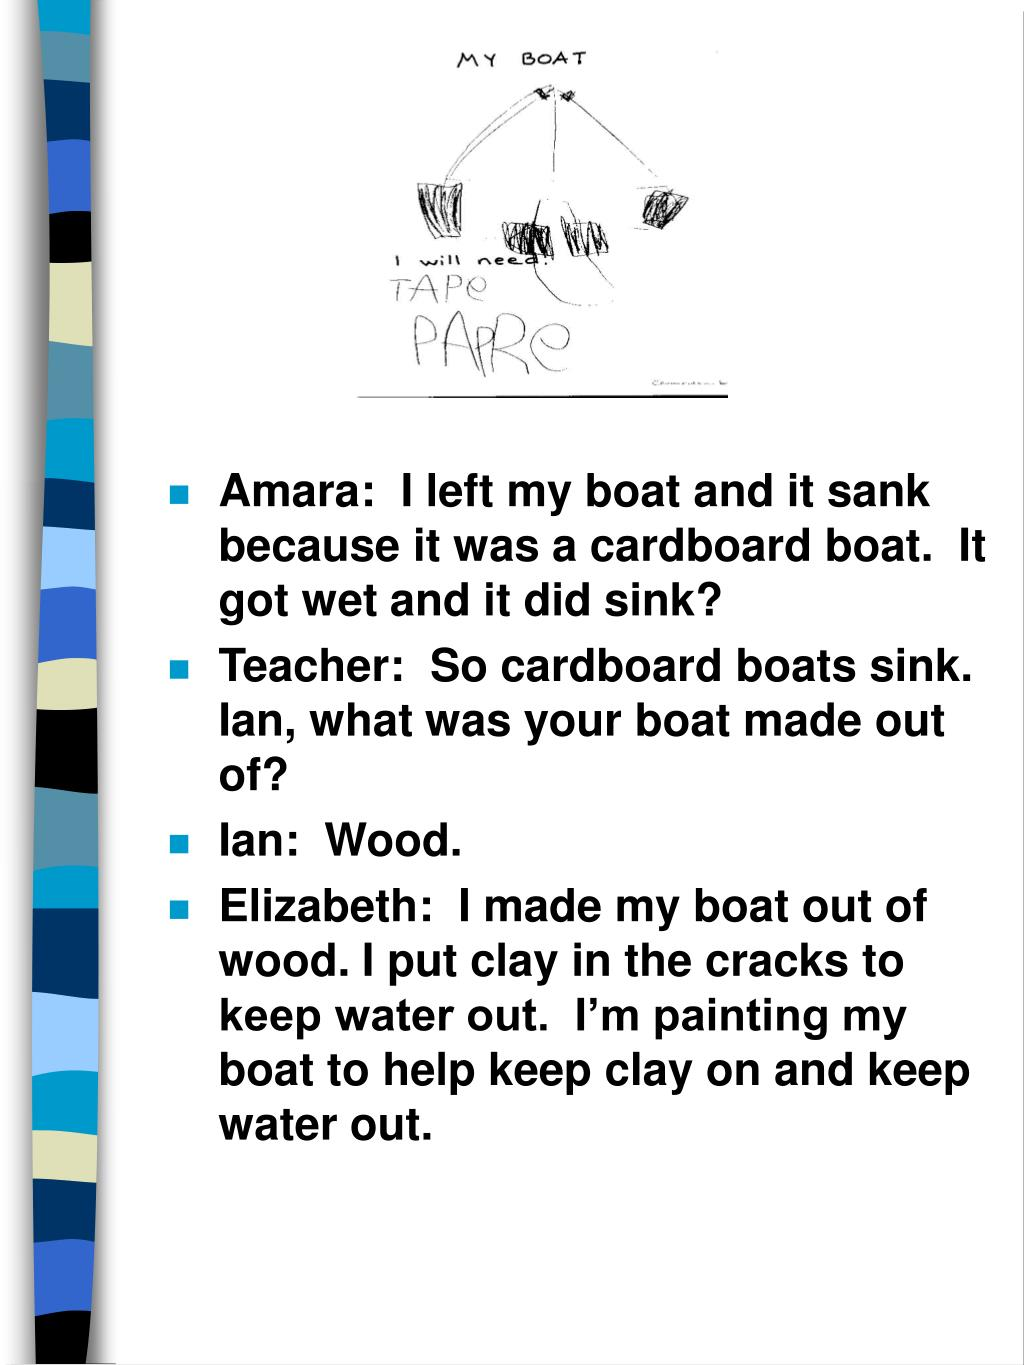 Amara:  I left my boat and it sank because it was a cardboard boat.  It got wet and it did sink?